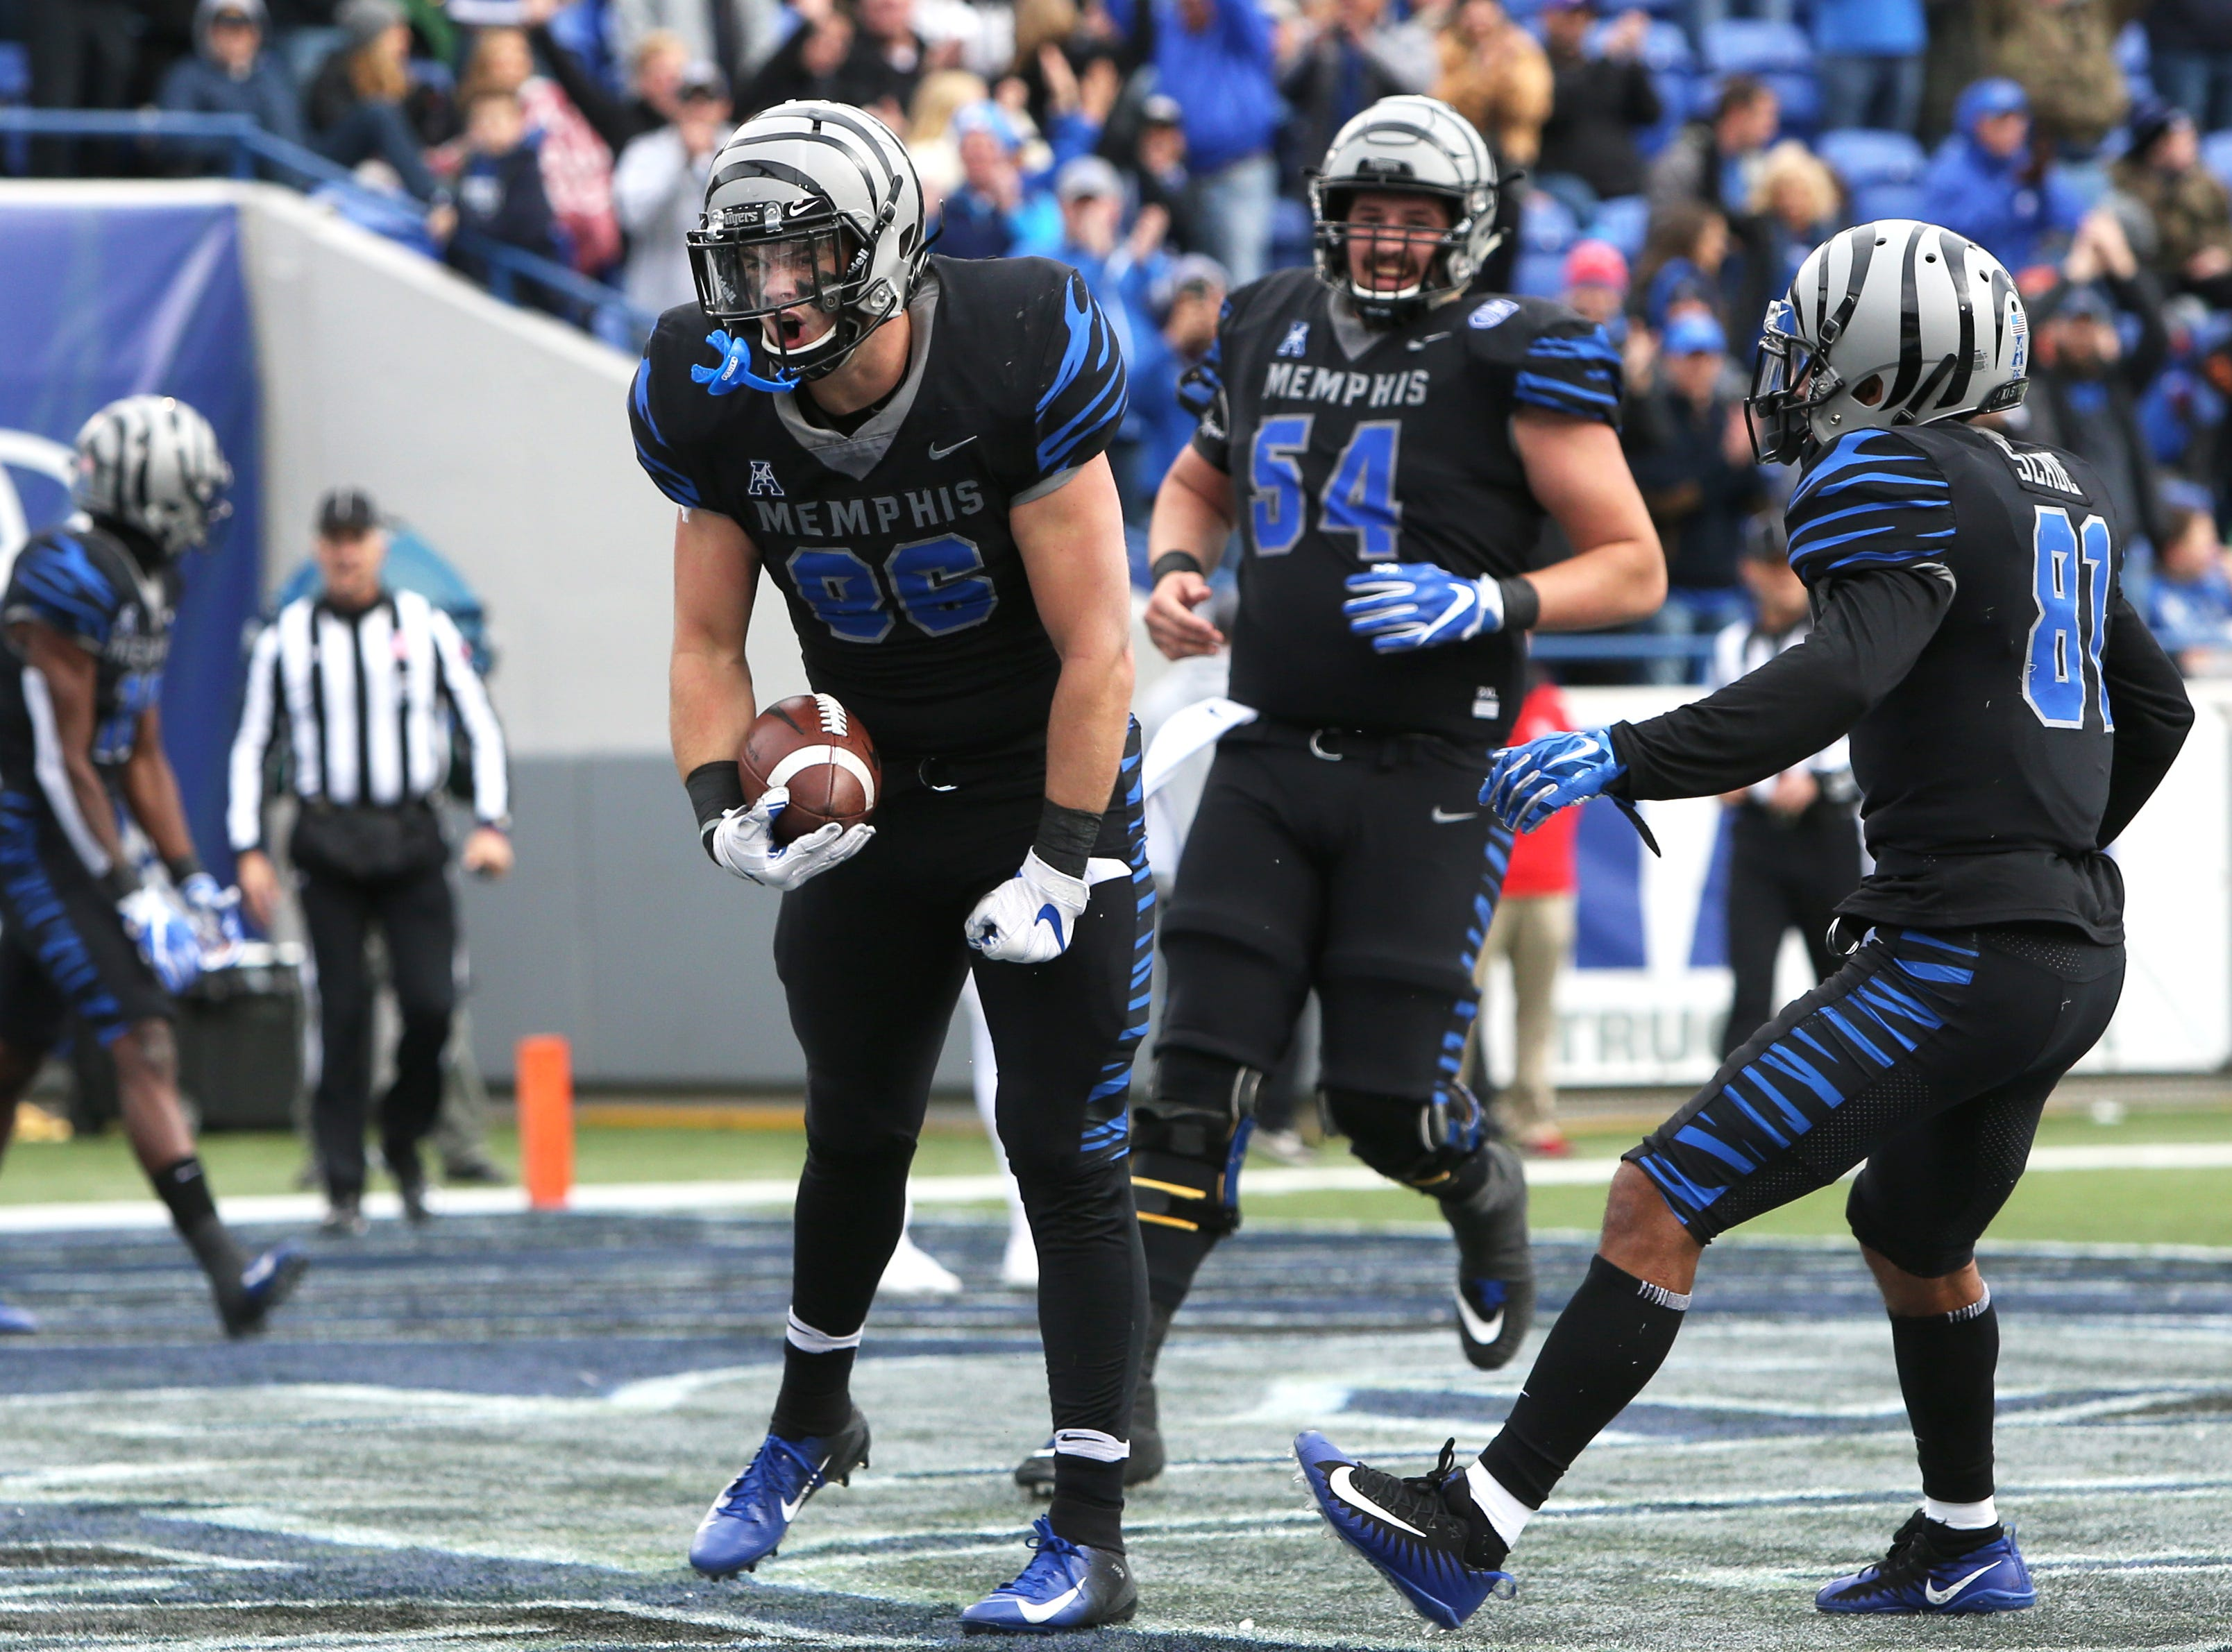 Memphis' Joey Magnifico celebrates his touchdown reception against Houston Cougars as the Tigers win the AAC West title 52-31 at the Liberty Bowl on Friday, Nov. 23, 2018.